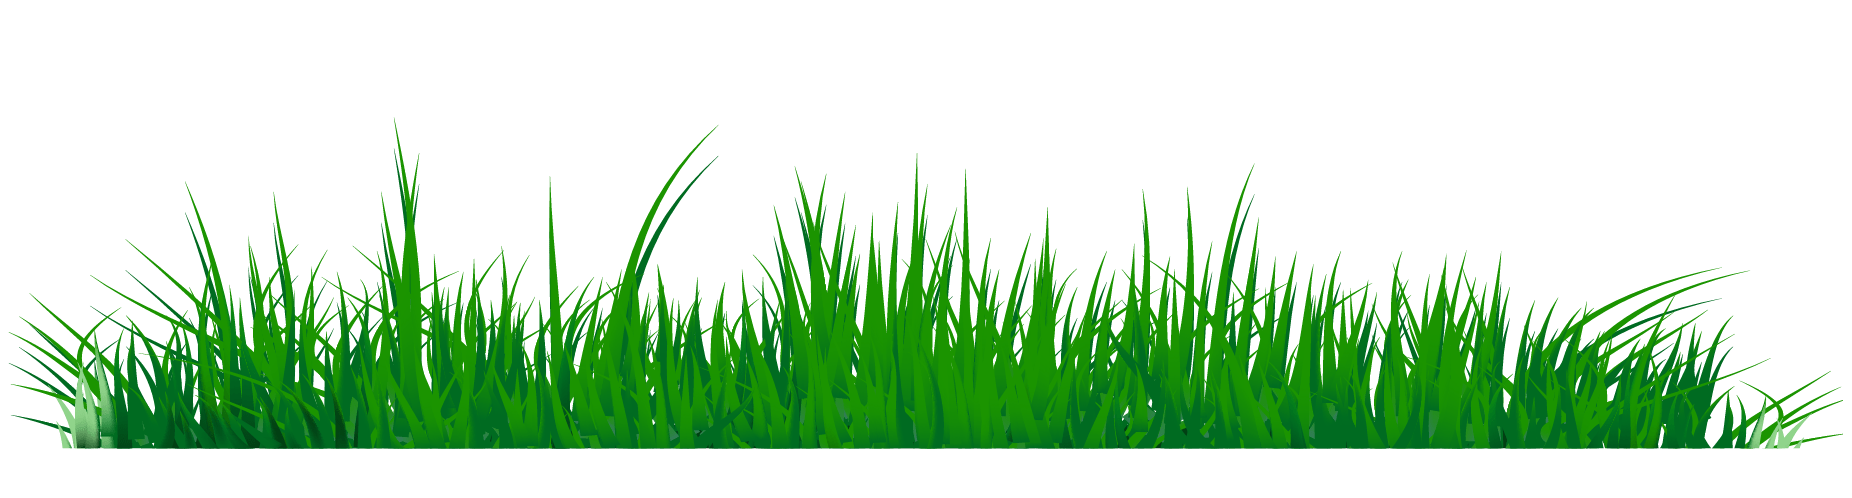 hight resolution of grass clipart png image 07 210x56 grass png images a live ornament tool